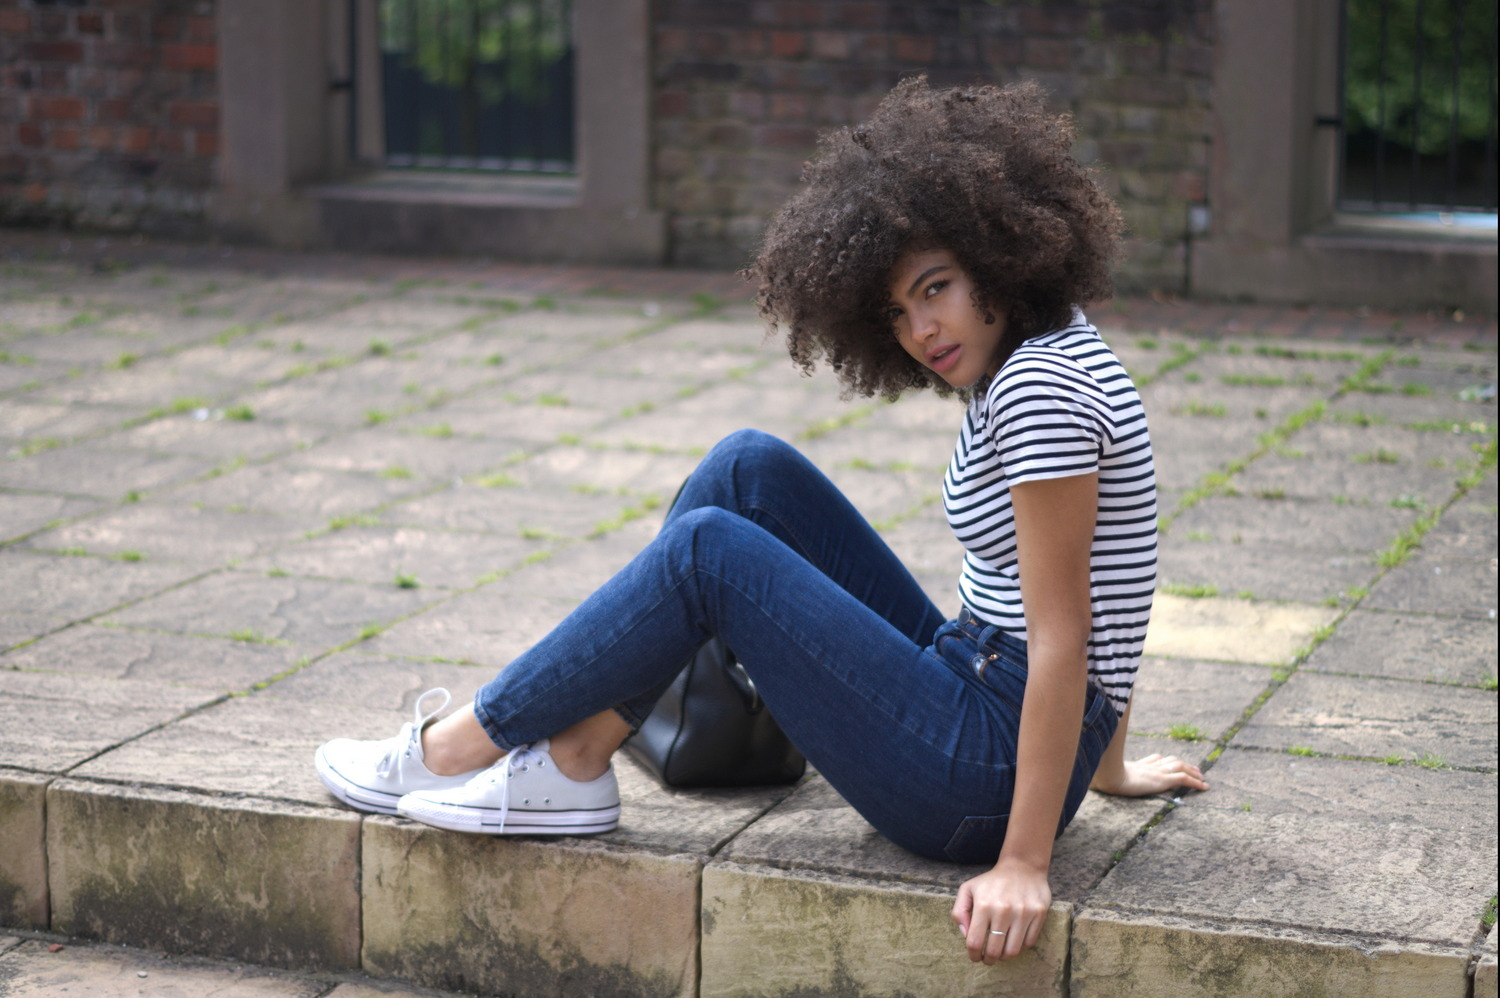 ASOS Farleigh jeans and converse outfit